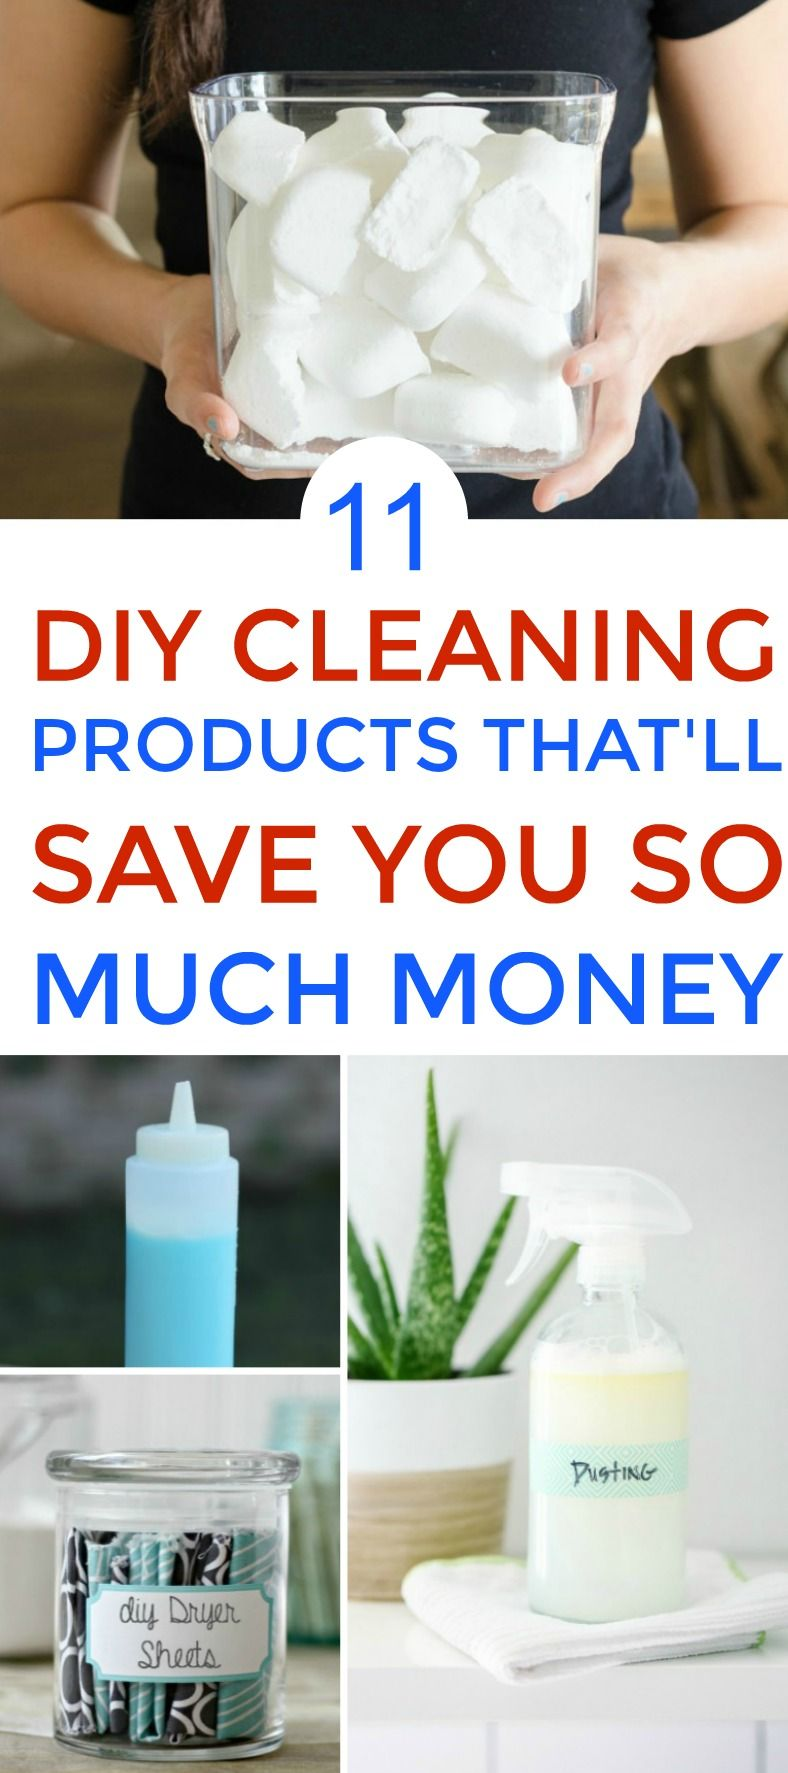 11 diy cleaning products that will make your life so much easier cleaning diy cleaning. Black Bedroom Furniture Sets. Home Design Ideas